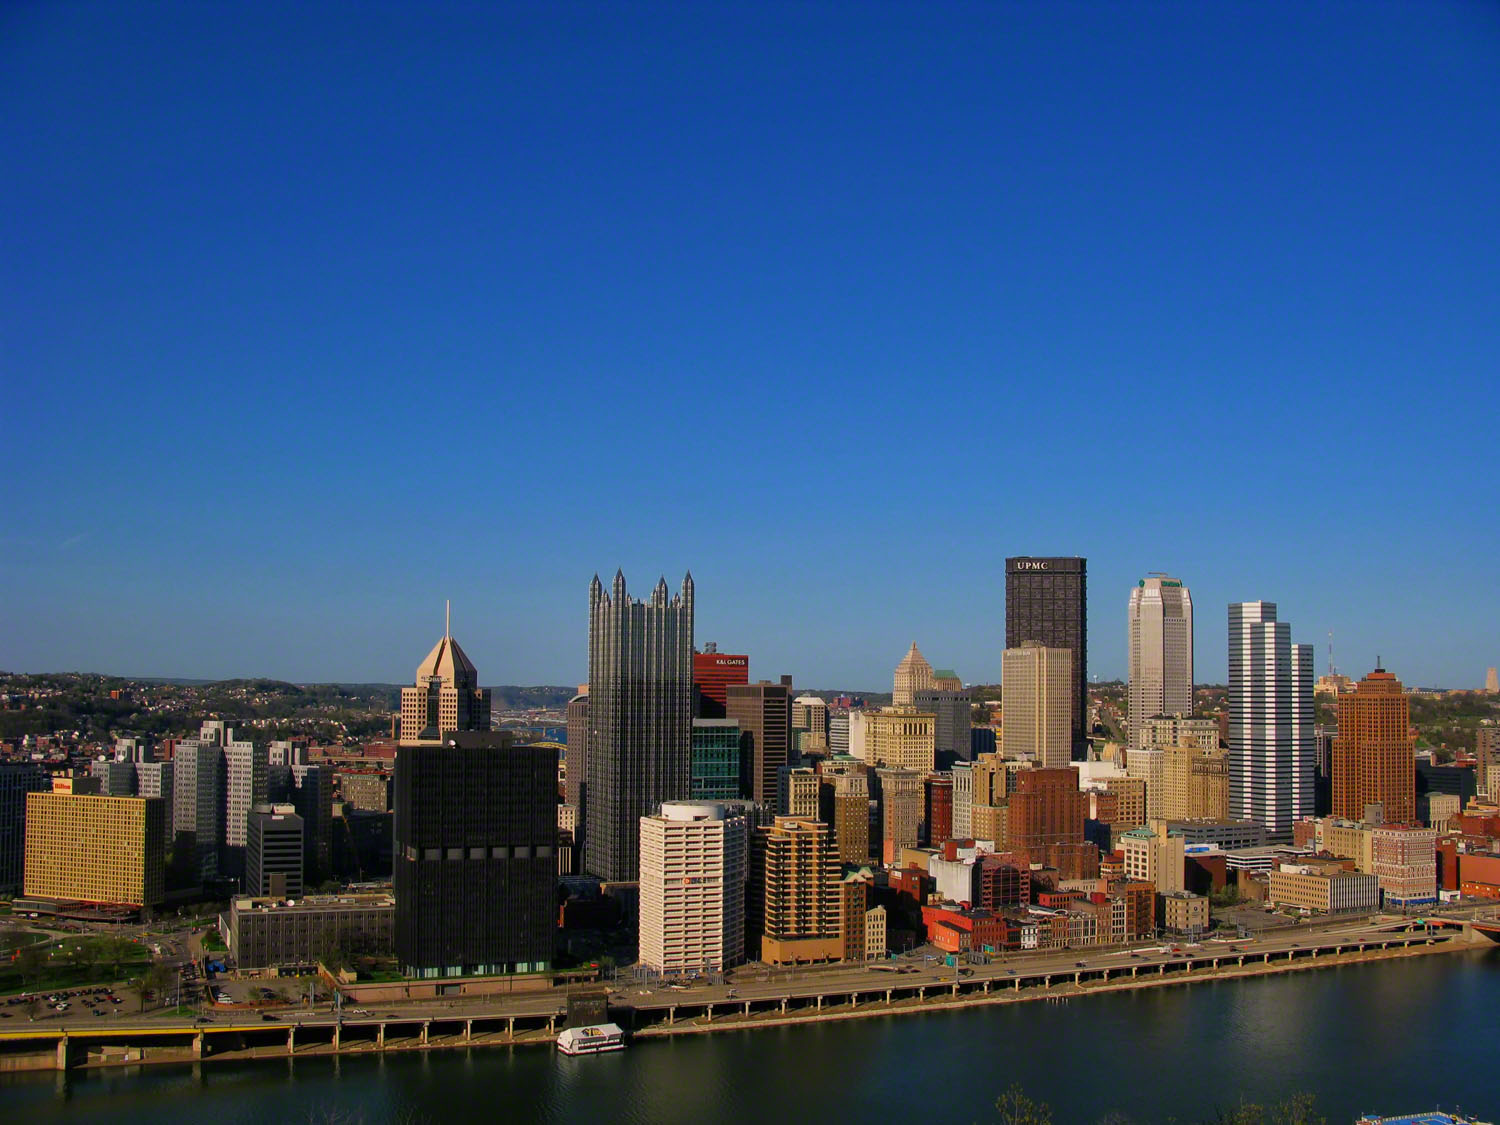 Arriving at the top of Mt Washington provides you with this great city view.